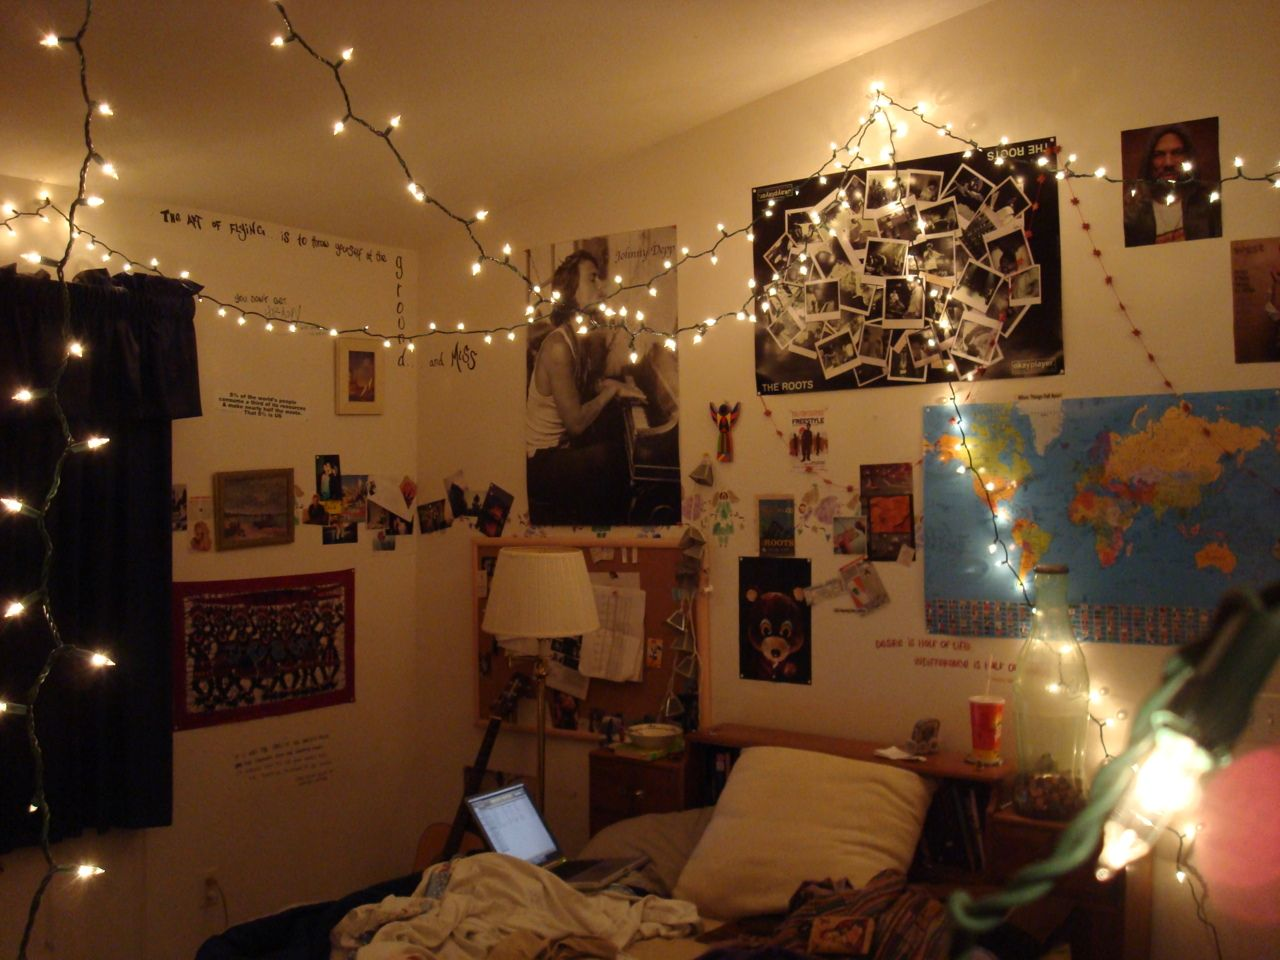 Teenage bedrooms with lights - Find This Pin And More On Tumblr Bedrooms Photo Lighting For Teenage Bedroom Images